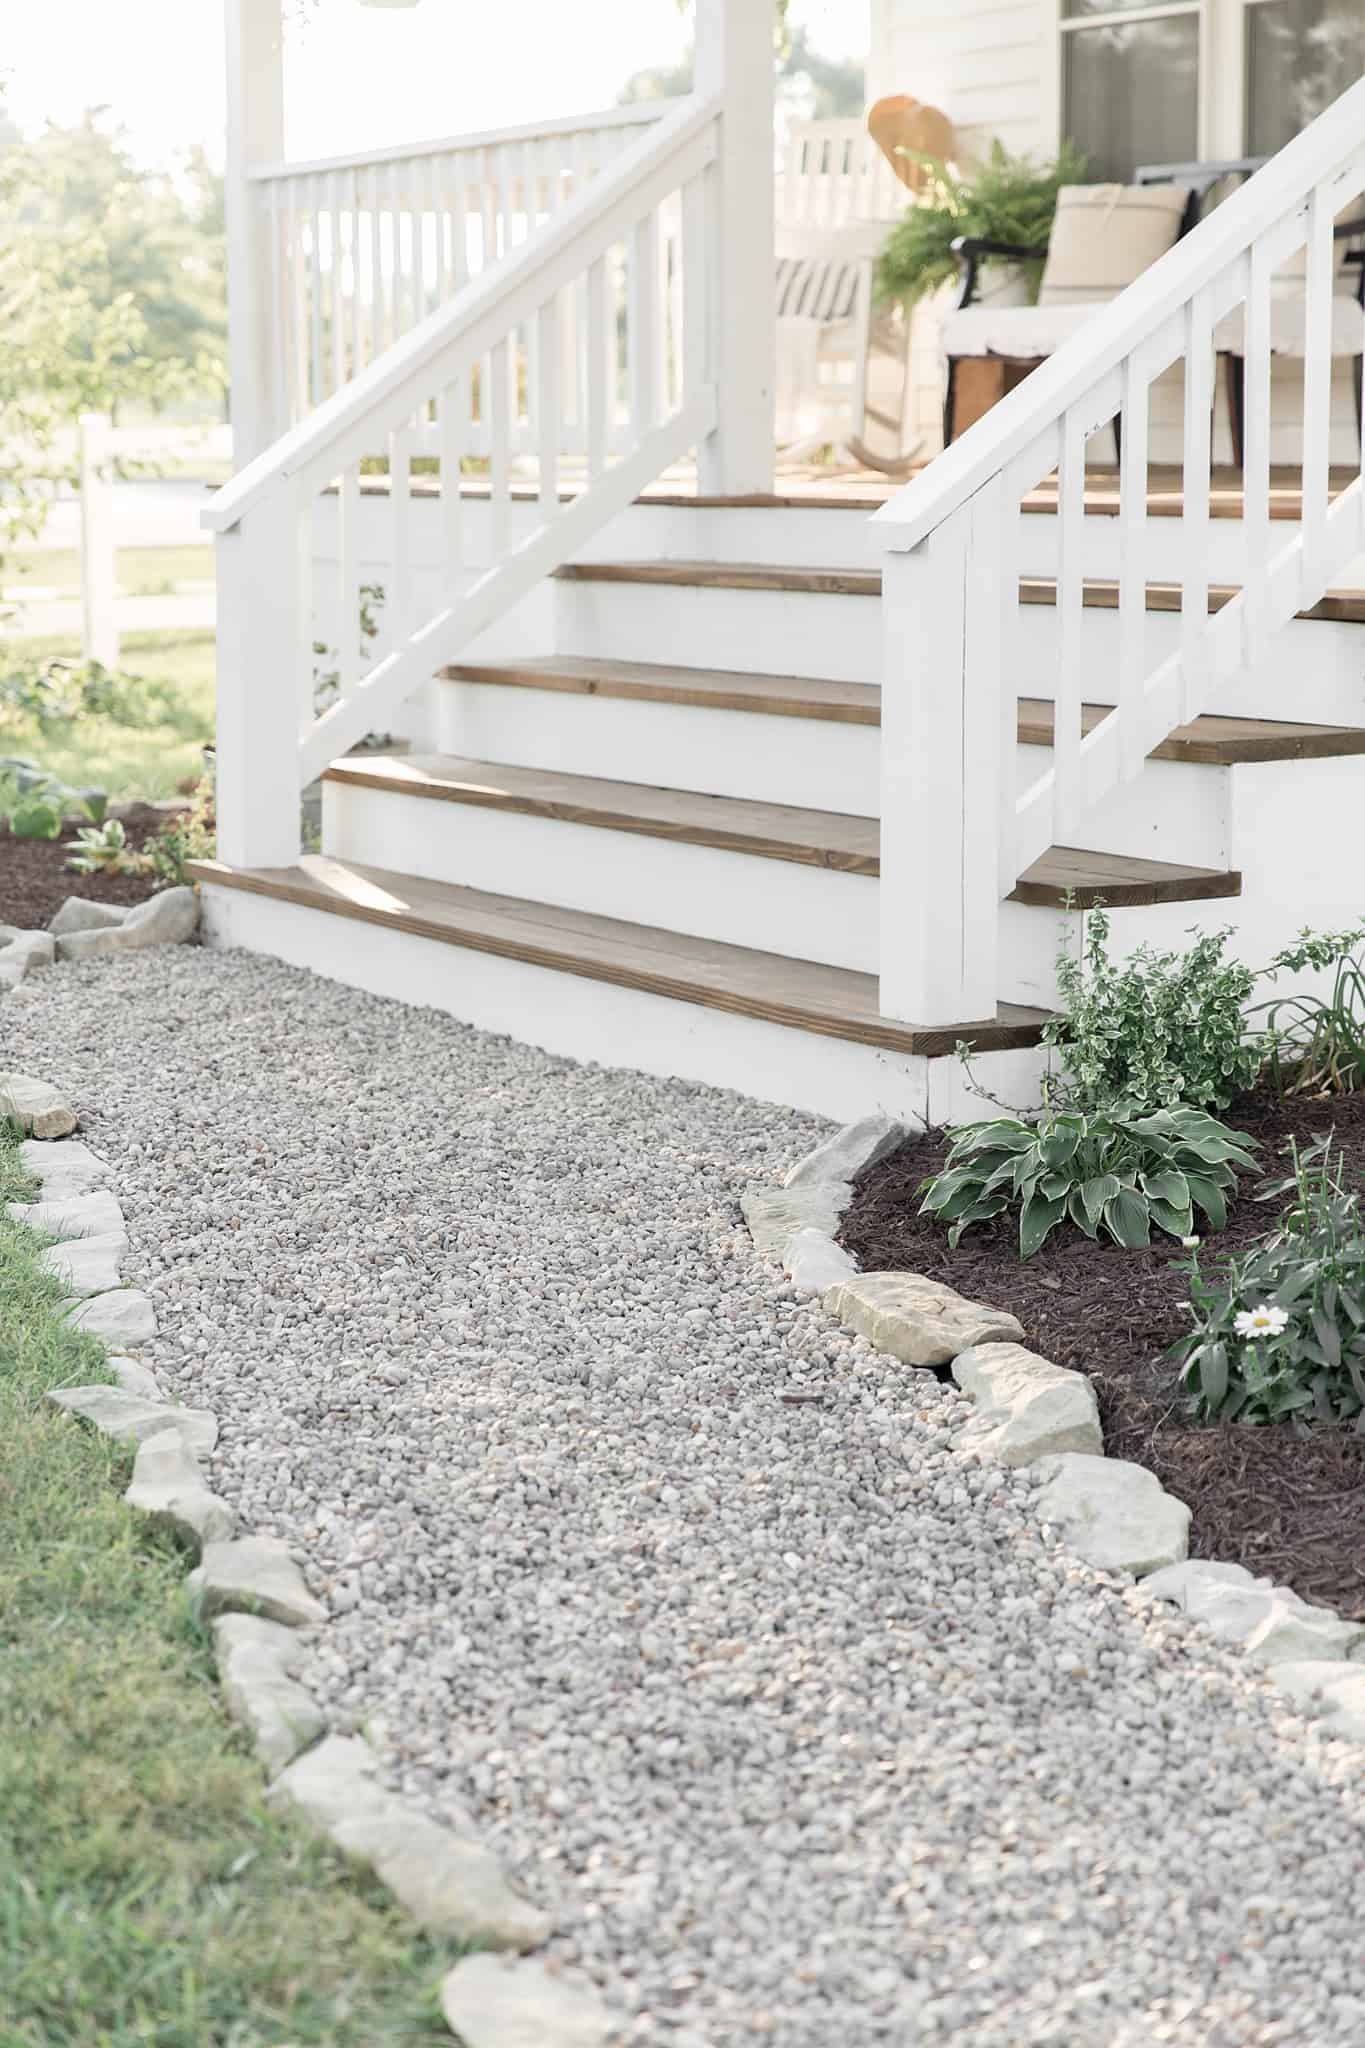 How To Cover Concrete Steps With Wood Farmhouse On Boone | Wood Railing On Concrete Steps | Stair Railing | Diy | Wooden | Railing Mode | Staircase